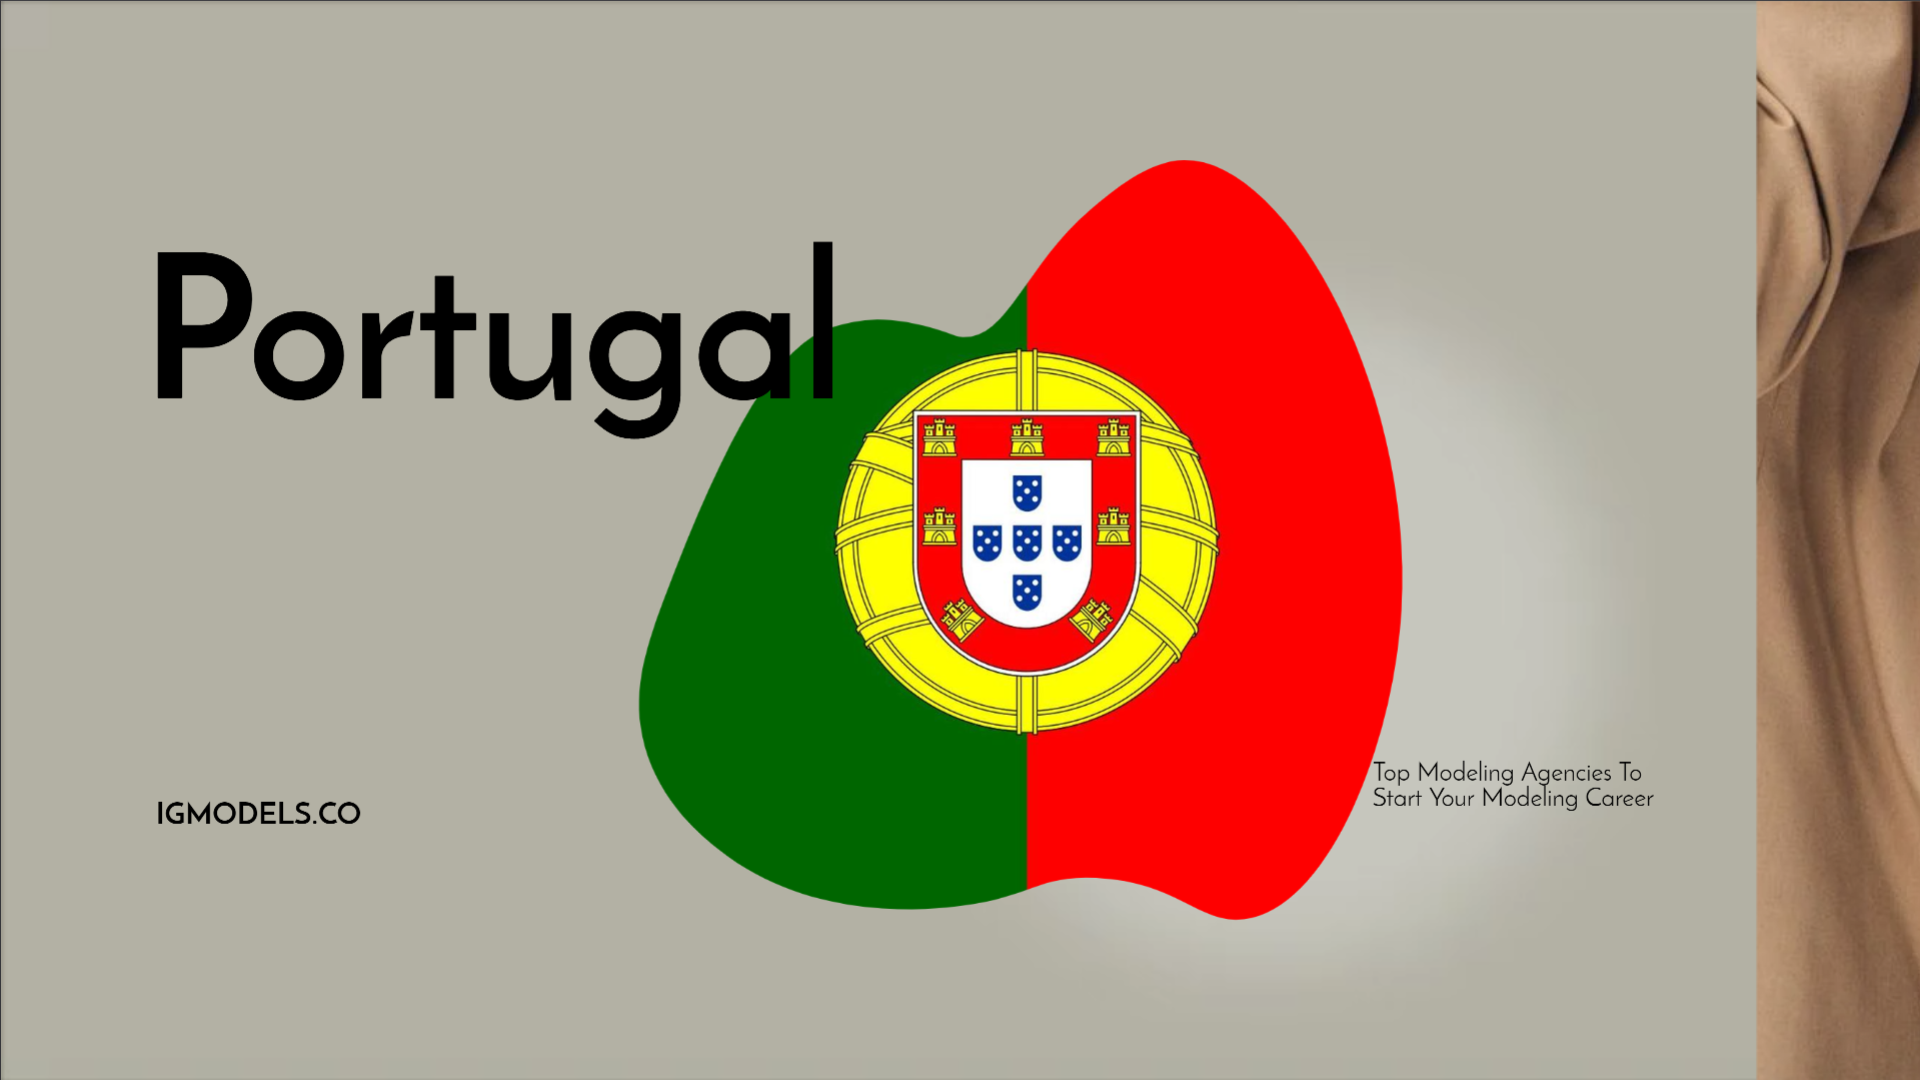 List : Top 22 Modeling Agencies In Portugal To Start Your Modeling Career In 2021